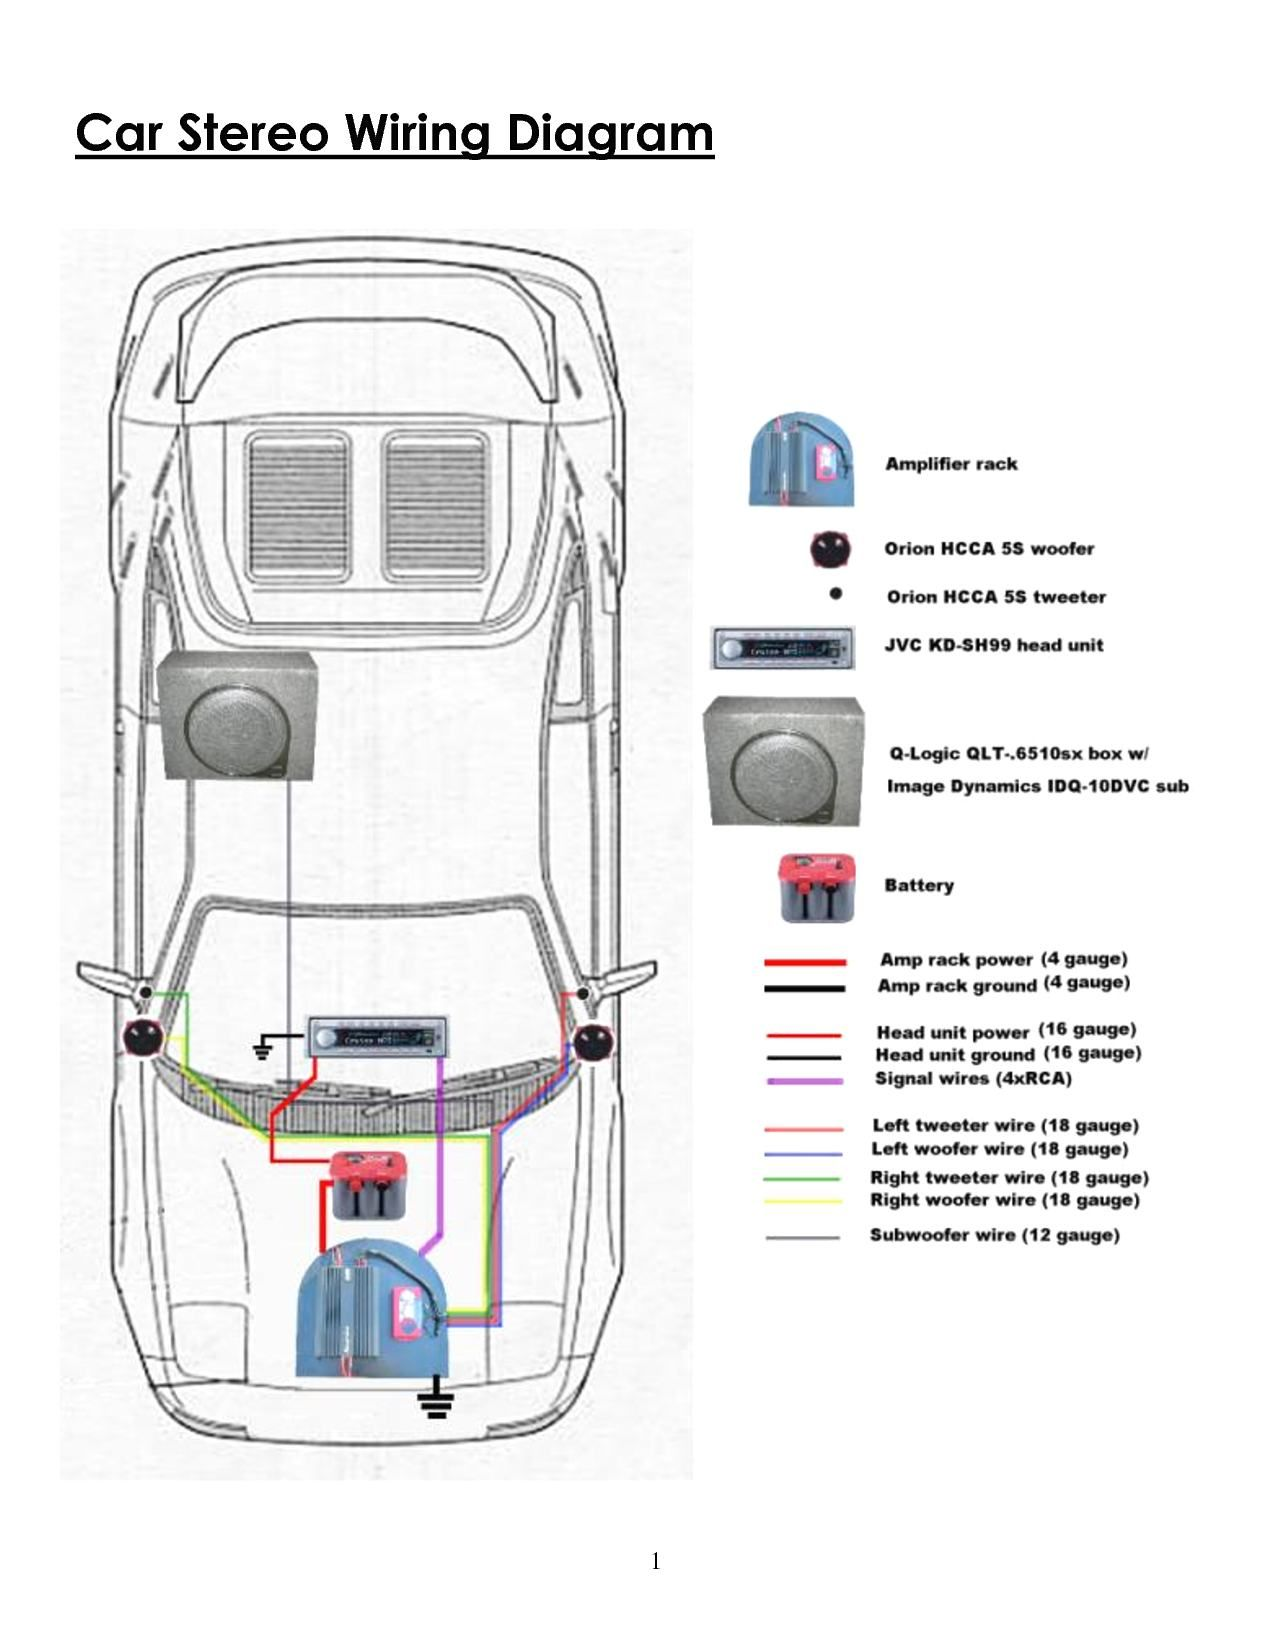 Bose Car Amplifier Wiring Diagram - bookingritzcarlton.info | Car  amplifier, Car subwoofer, Subwoofer wiringPinterest